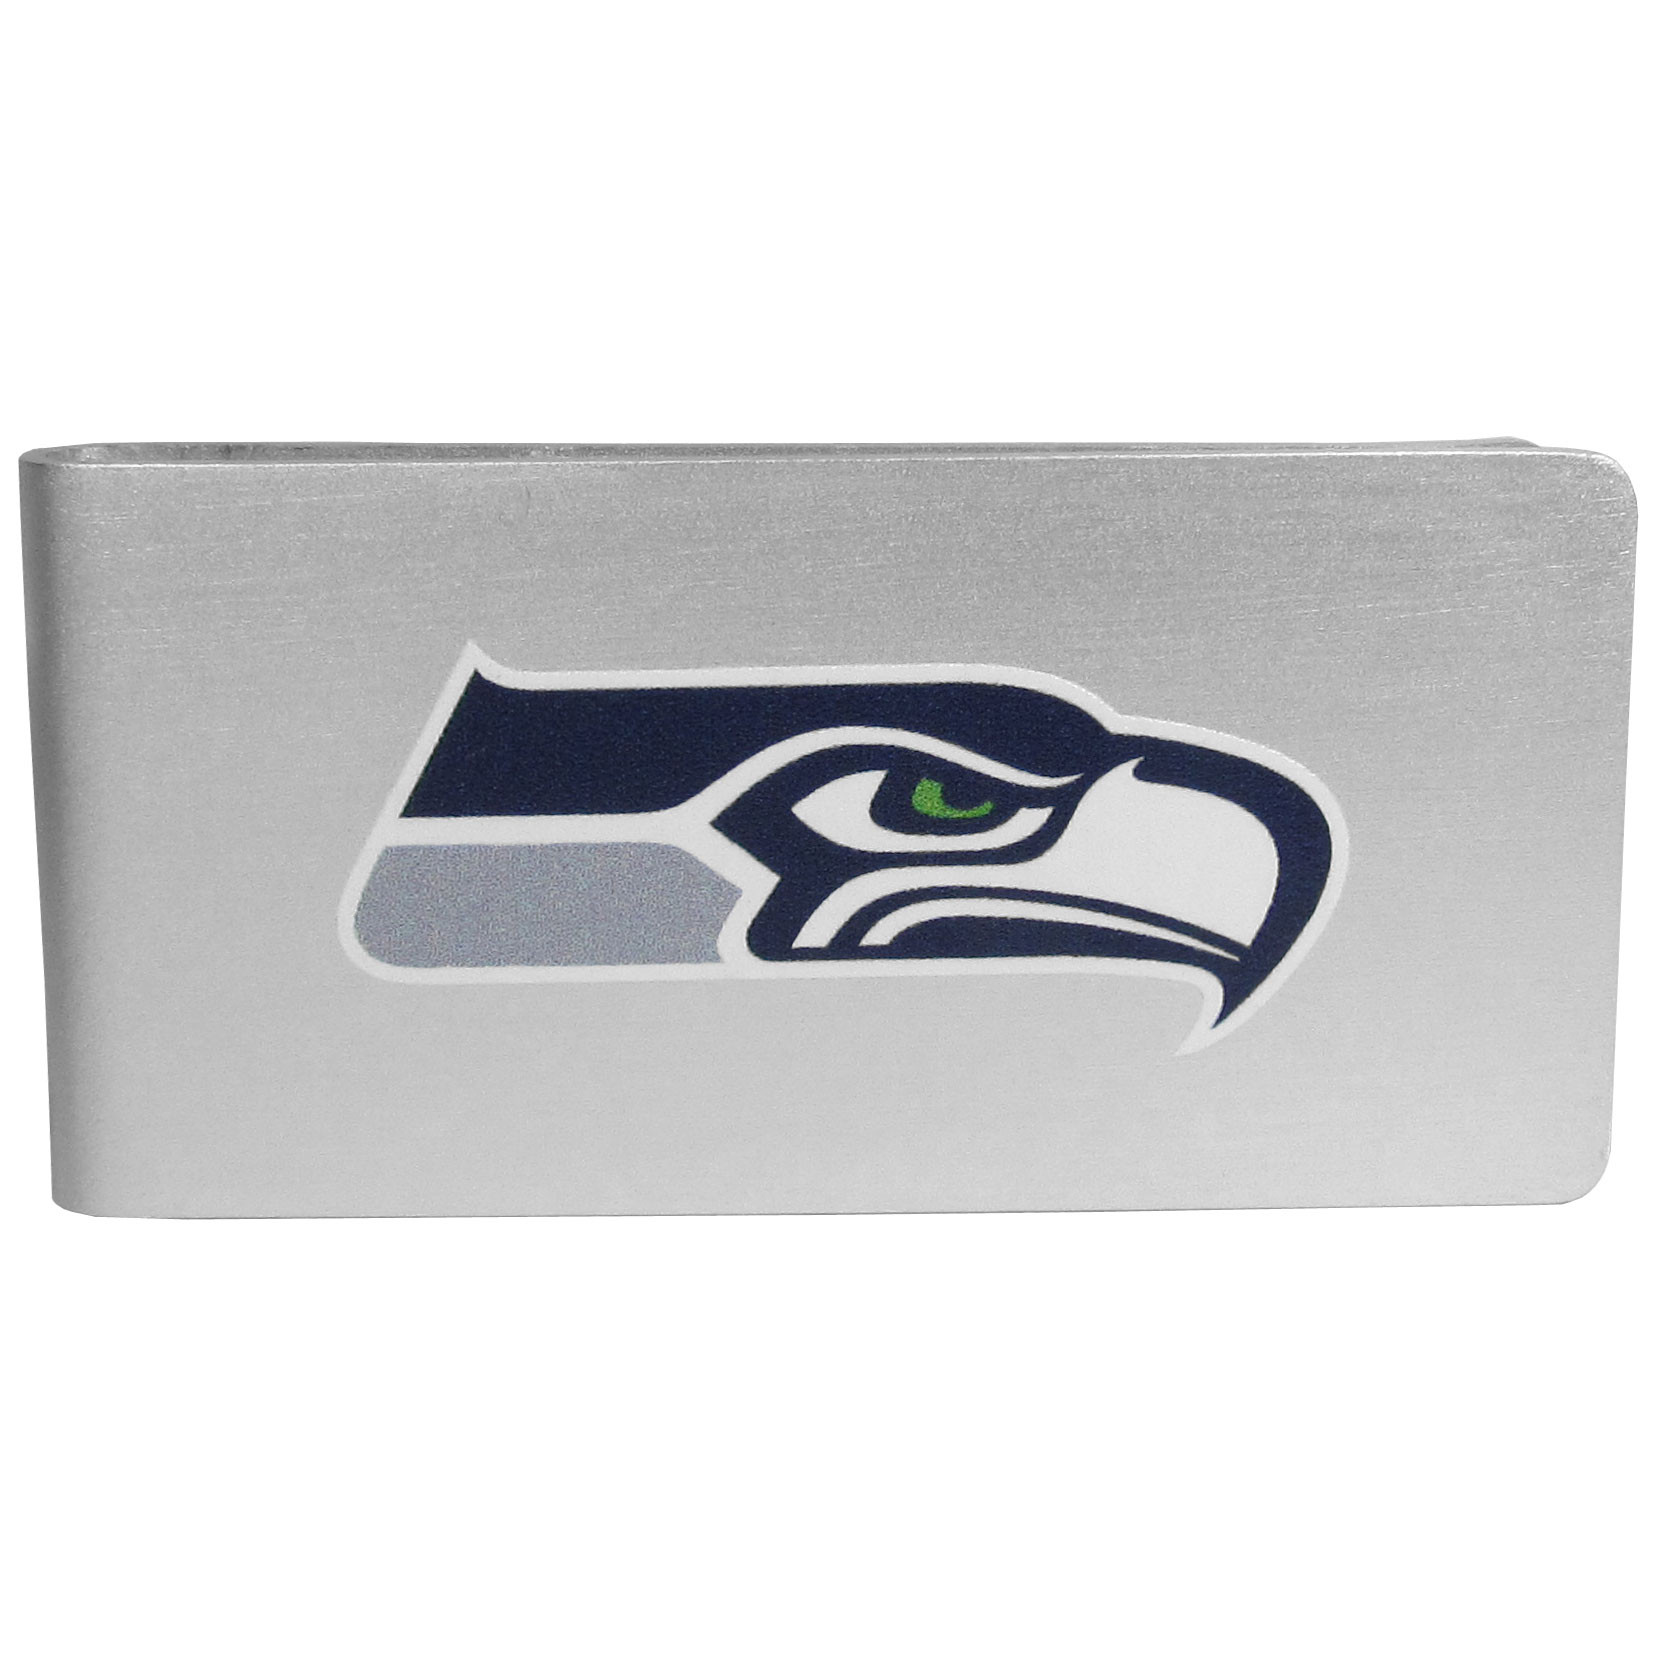 Seattle Seahawks Logo Money Clip - Our brushed metal money clip has classic style and functionality. The attractive clip features the Seattle Seahawks logo expertly printed on front.